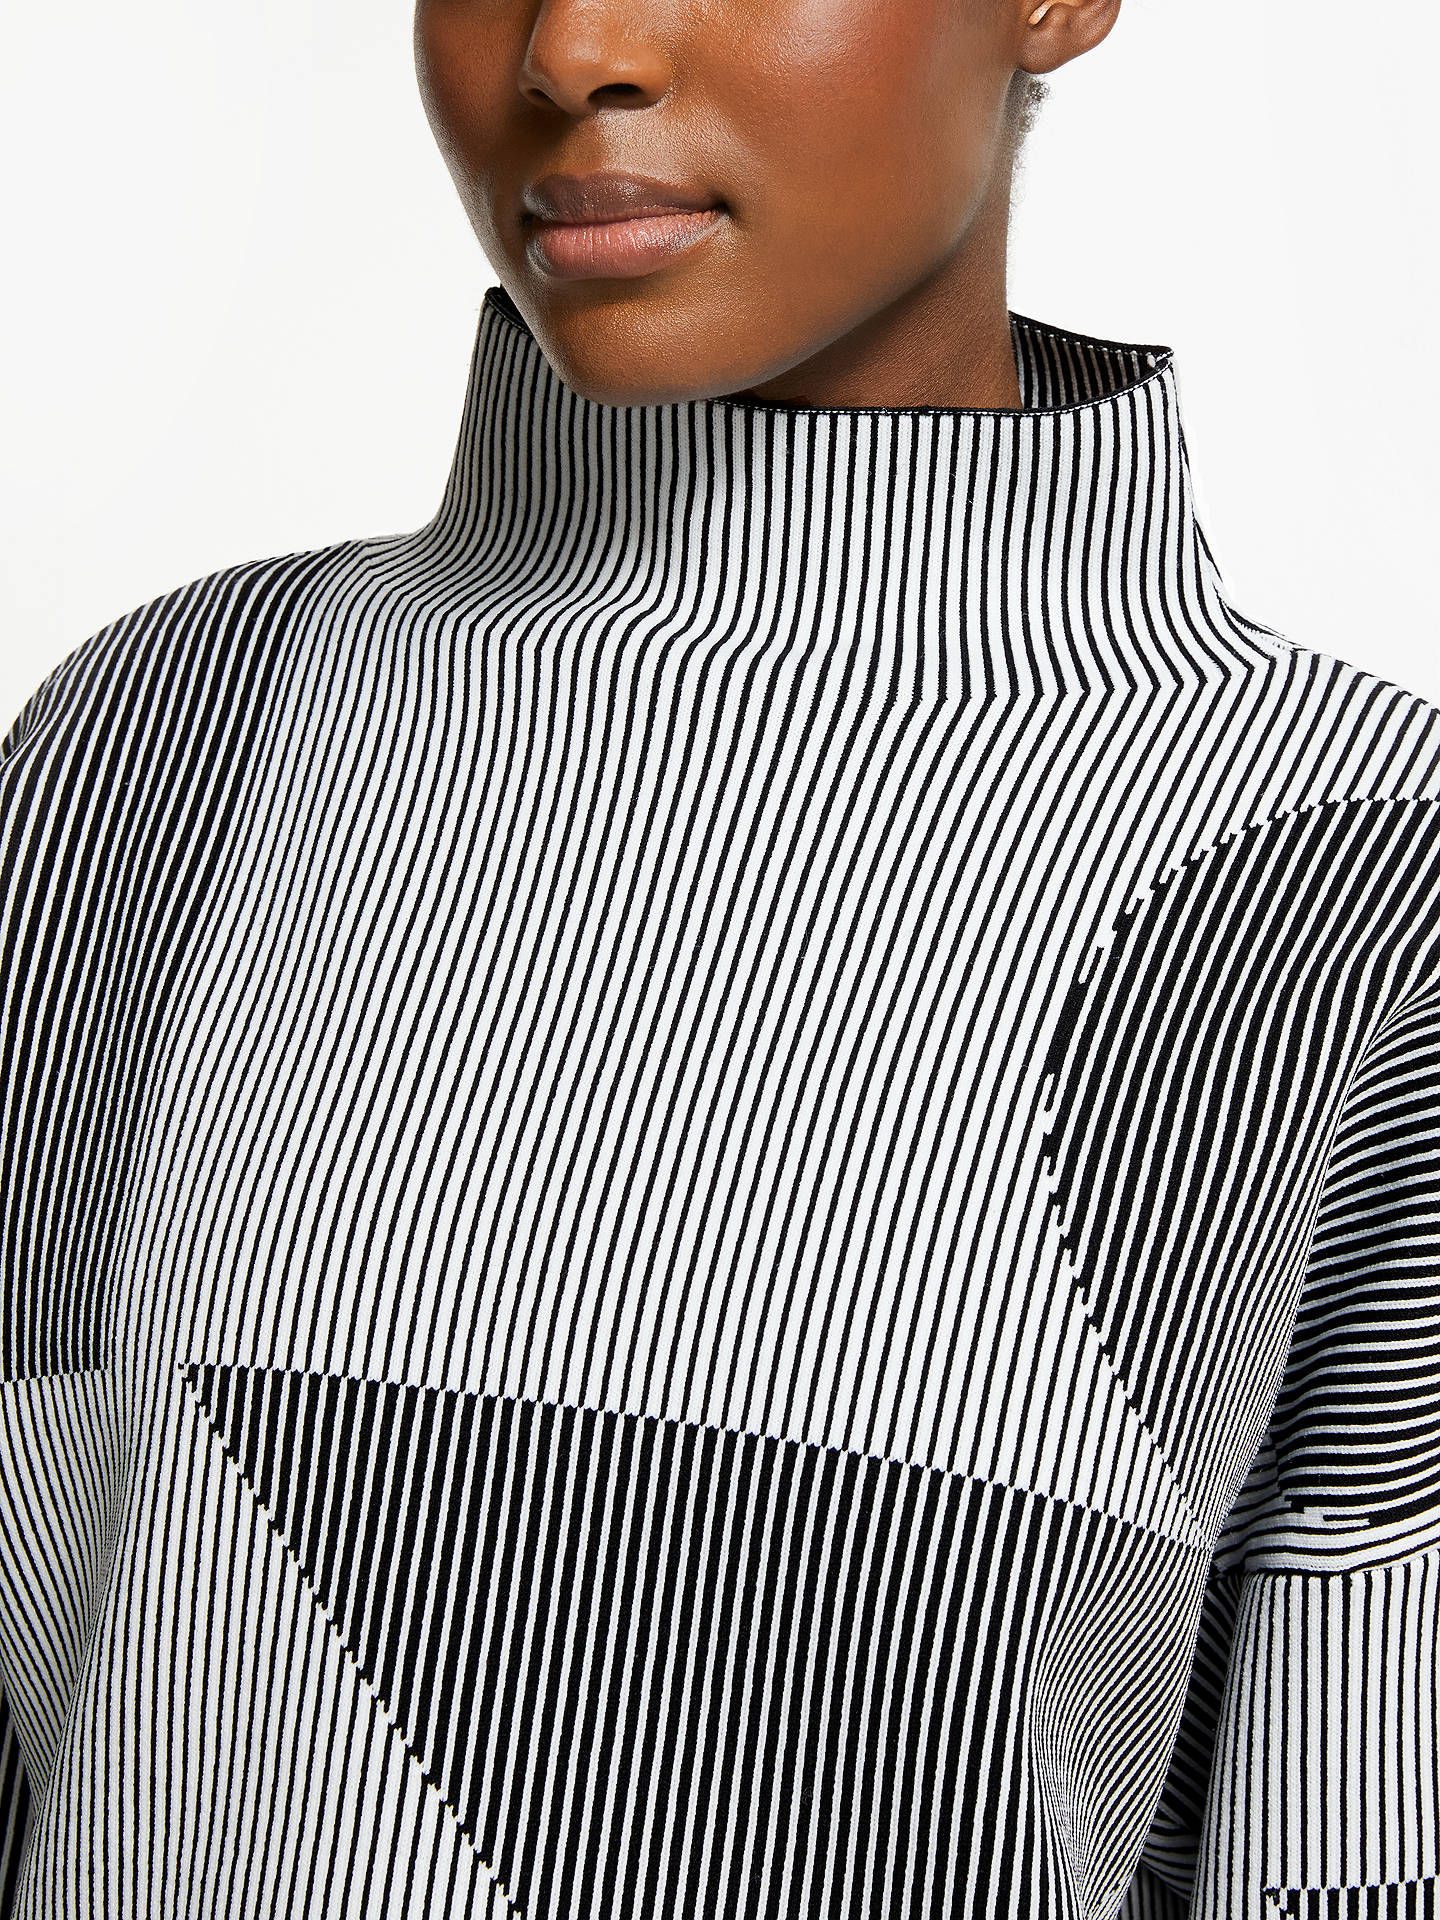 BuyPATTERNITY + John Lewis Oversize Stripe Jumper, Black/White, M Online at johnlewis.com